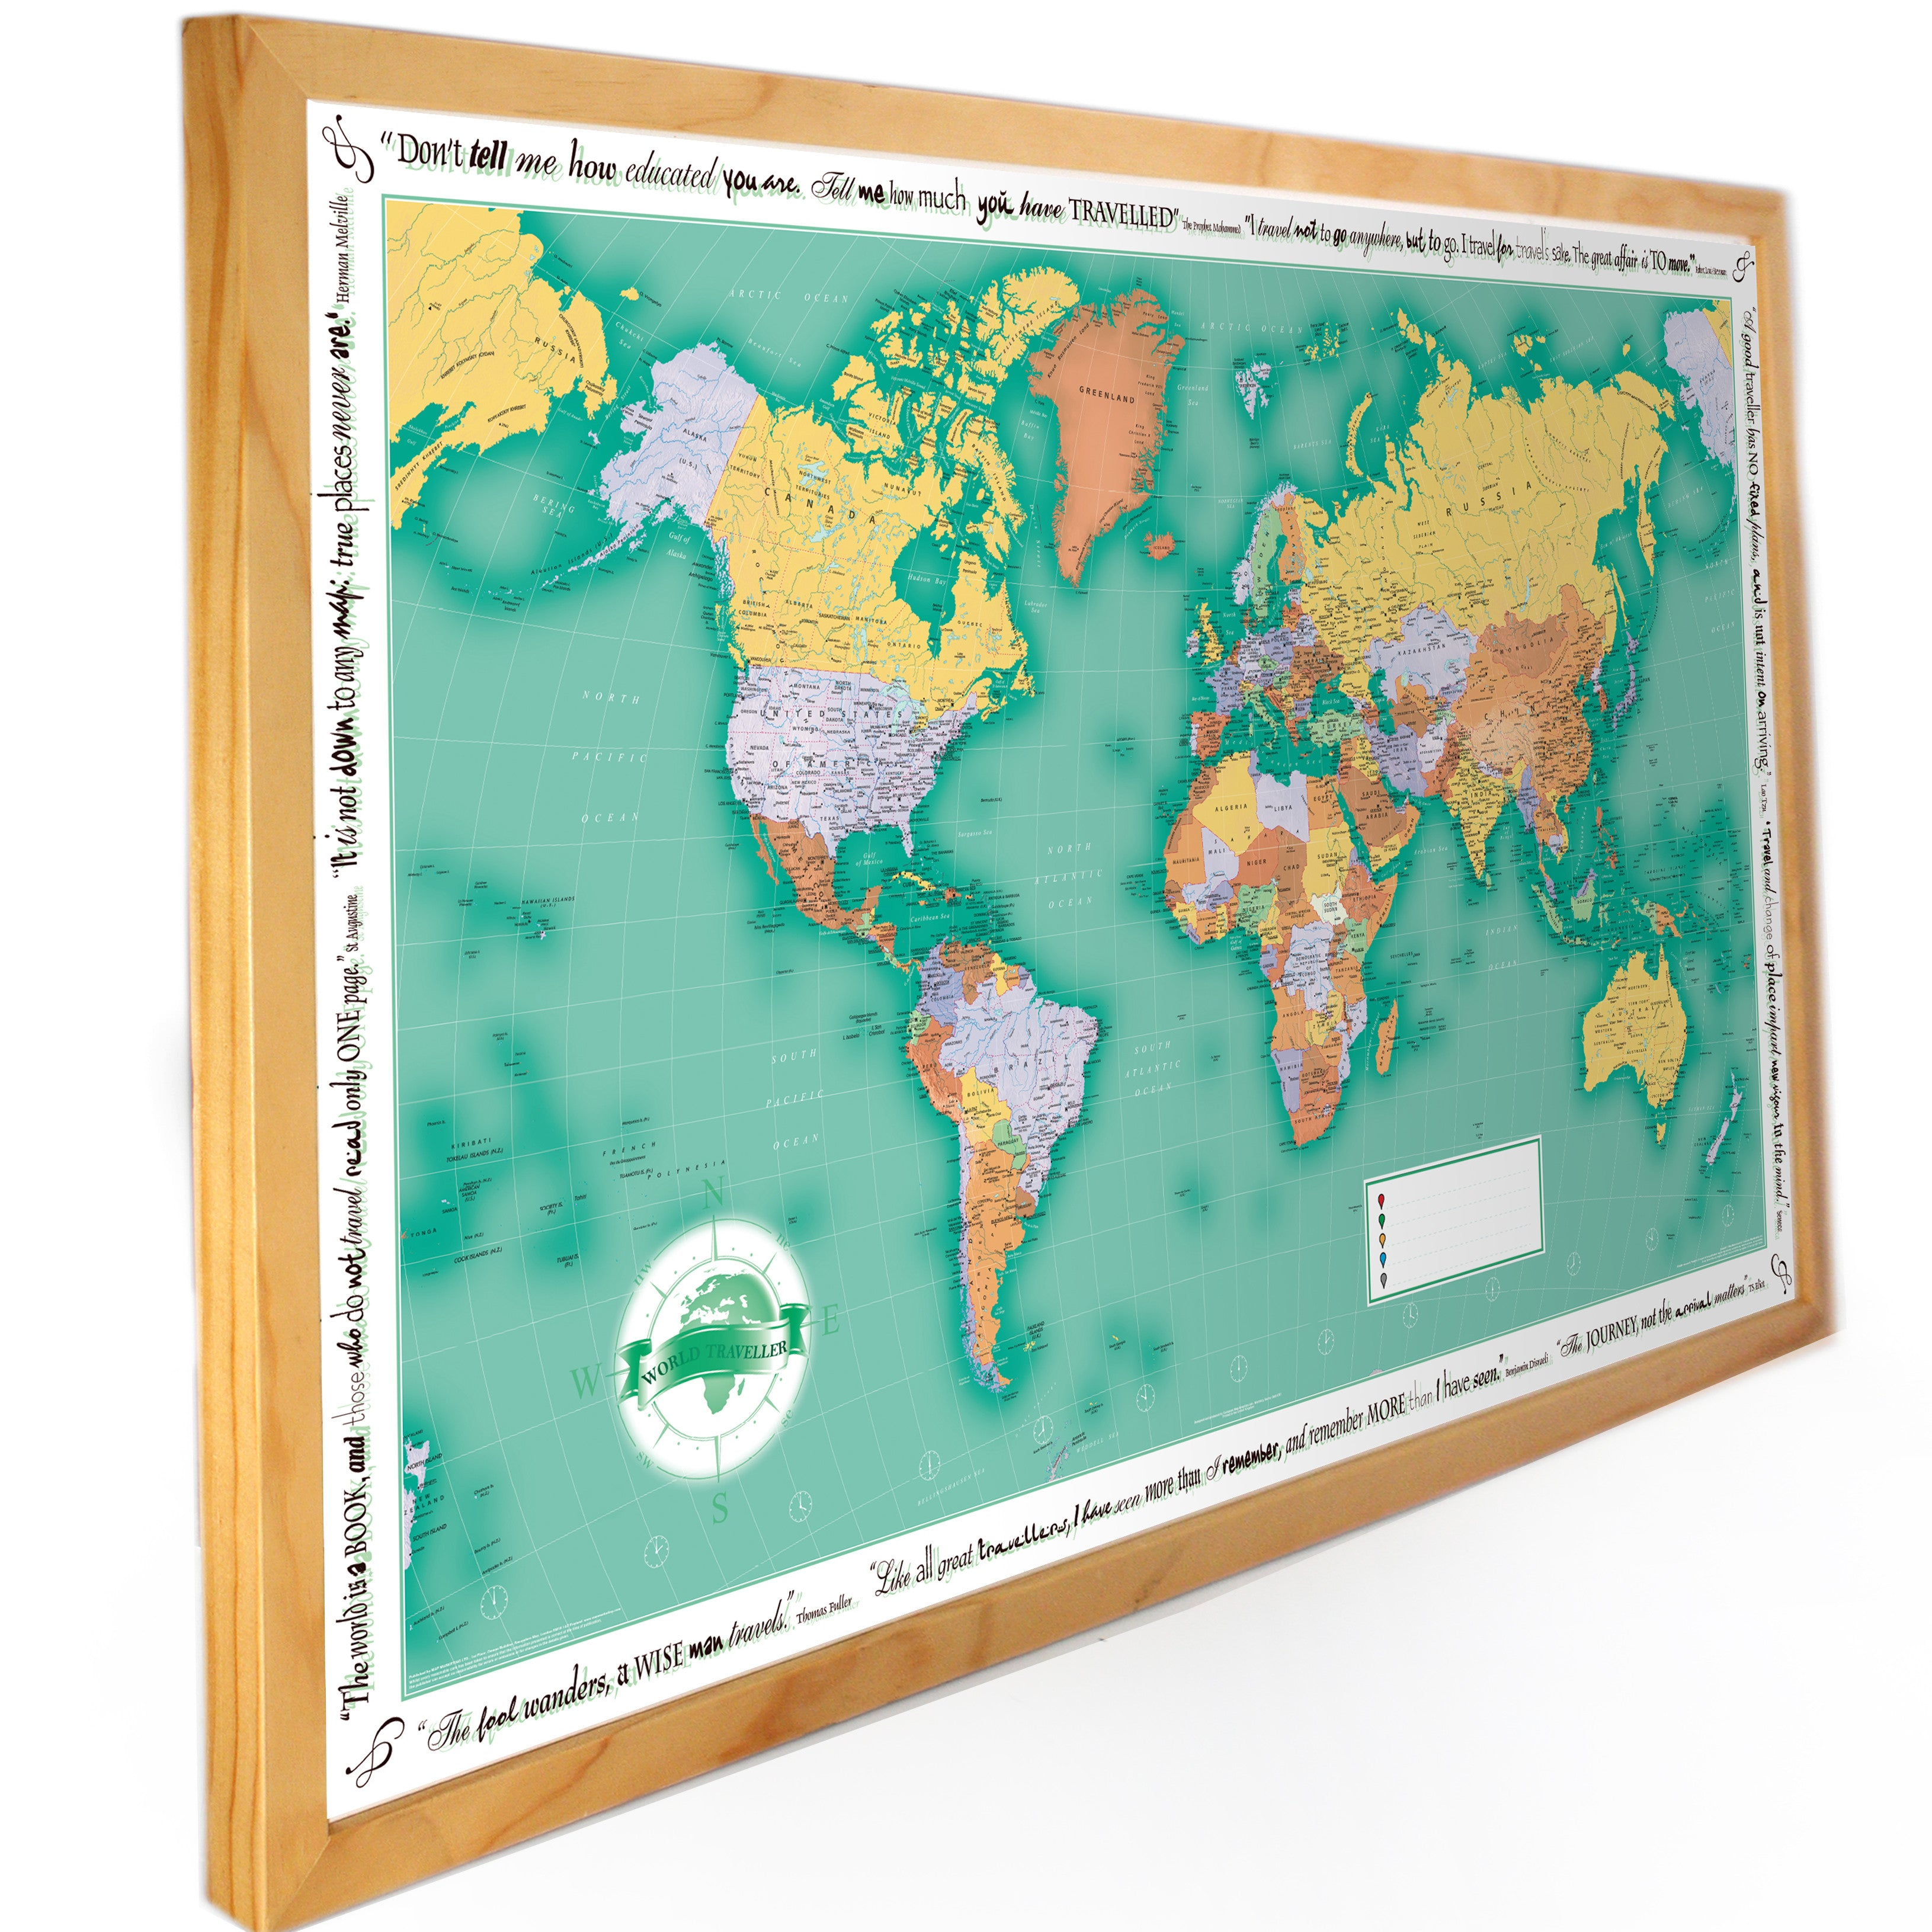 Personalised map gifts map marketing world map gifts personalised wall maps and map gift ideas from map marketing gumiabroncs Image collections